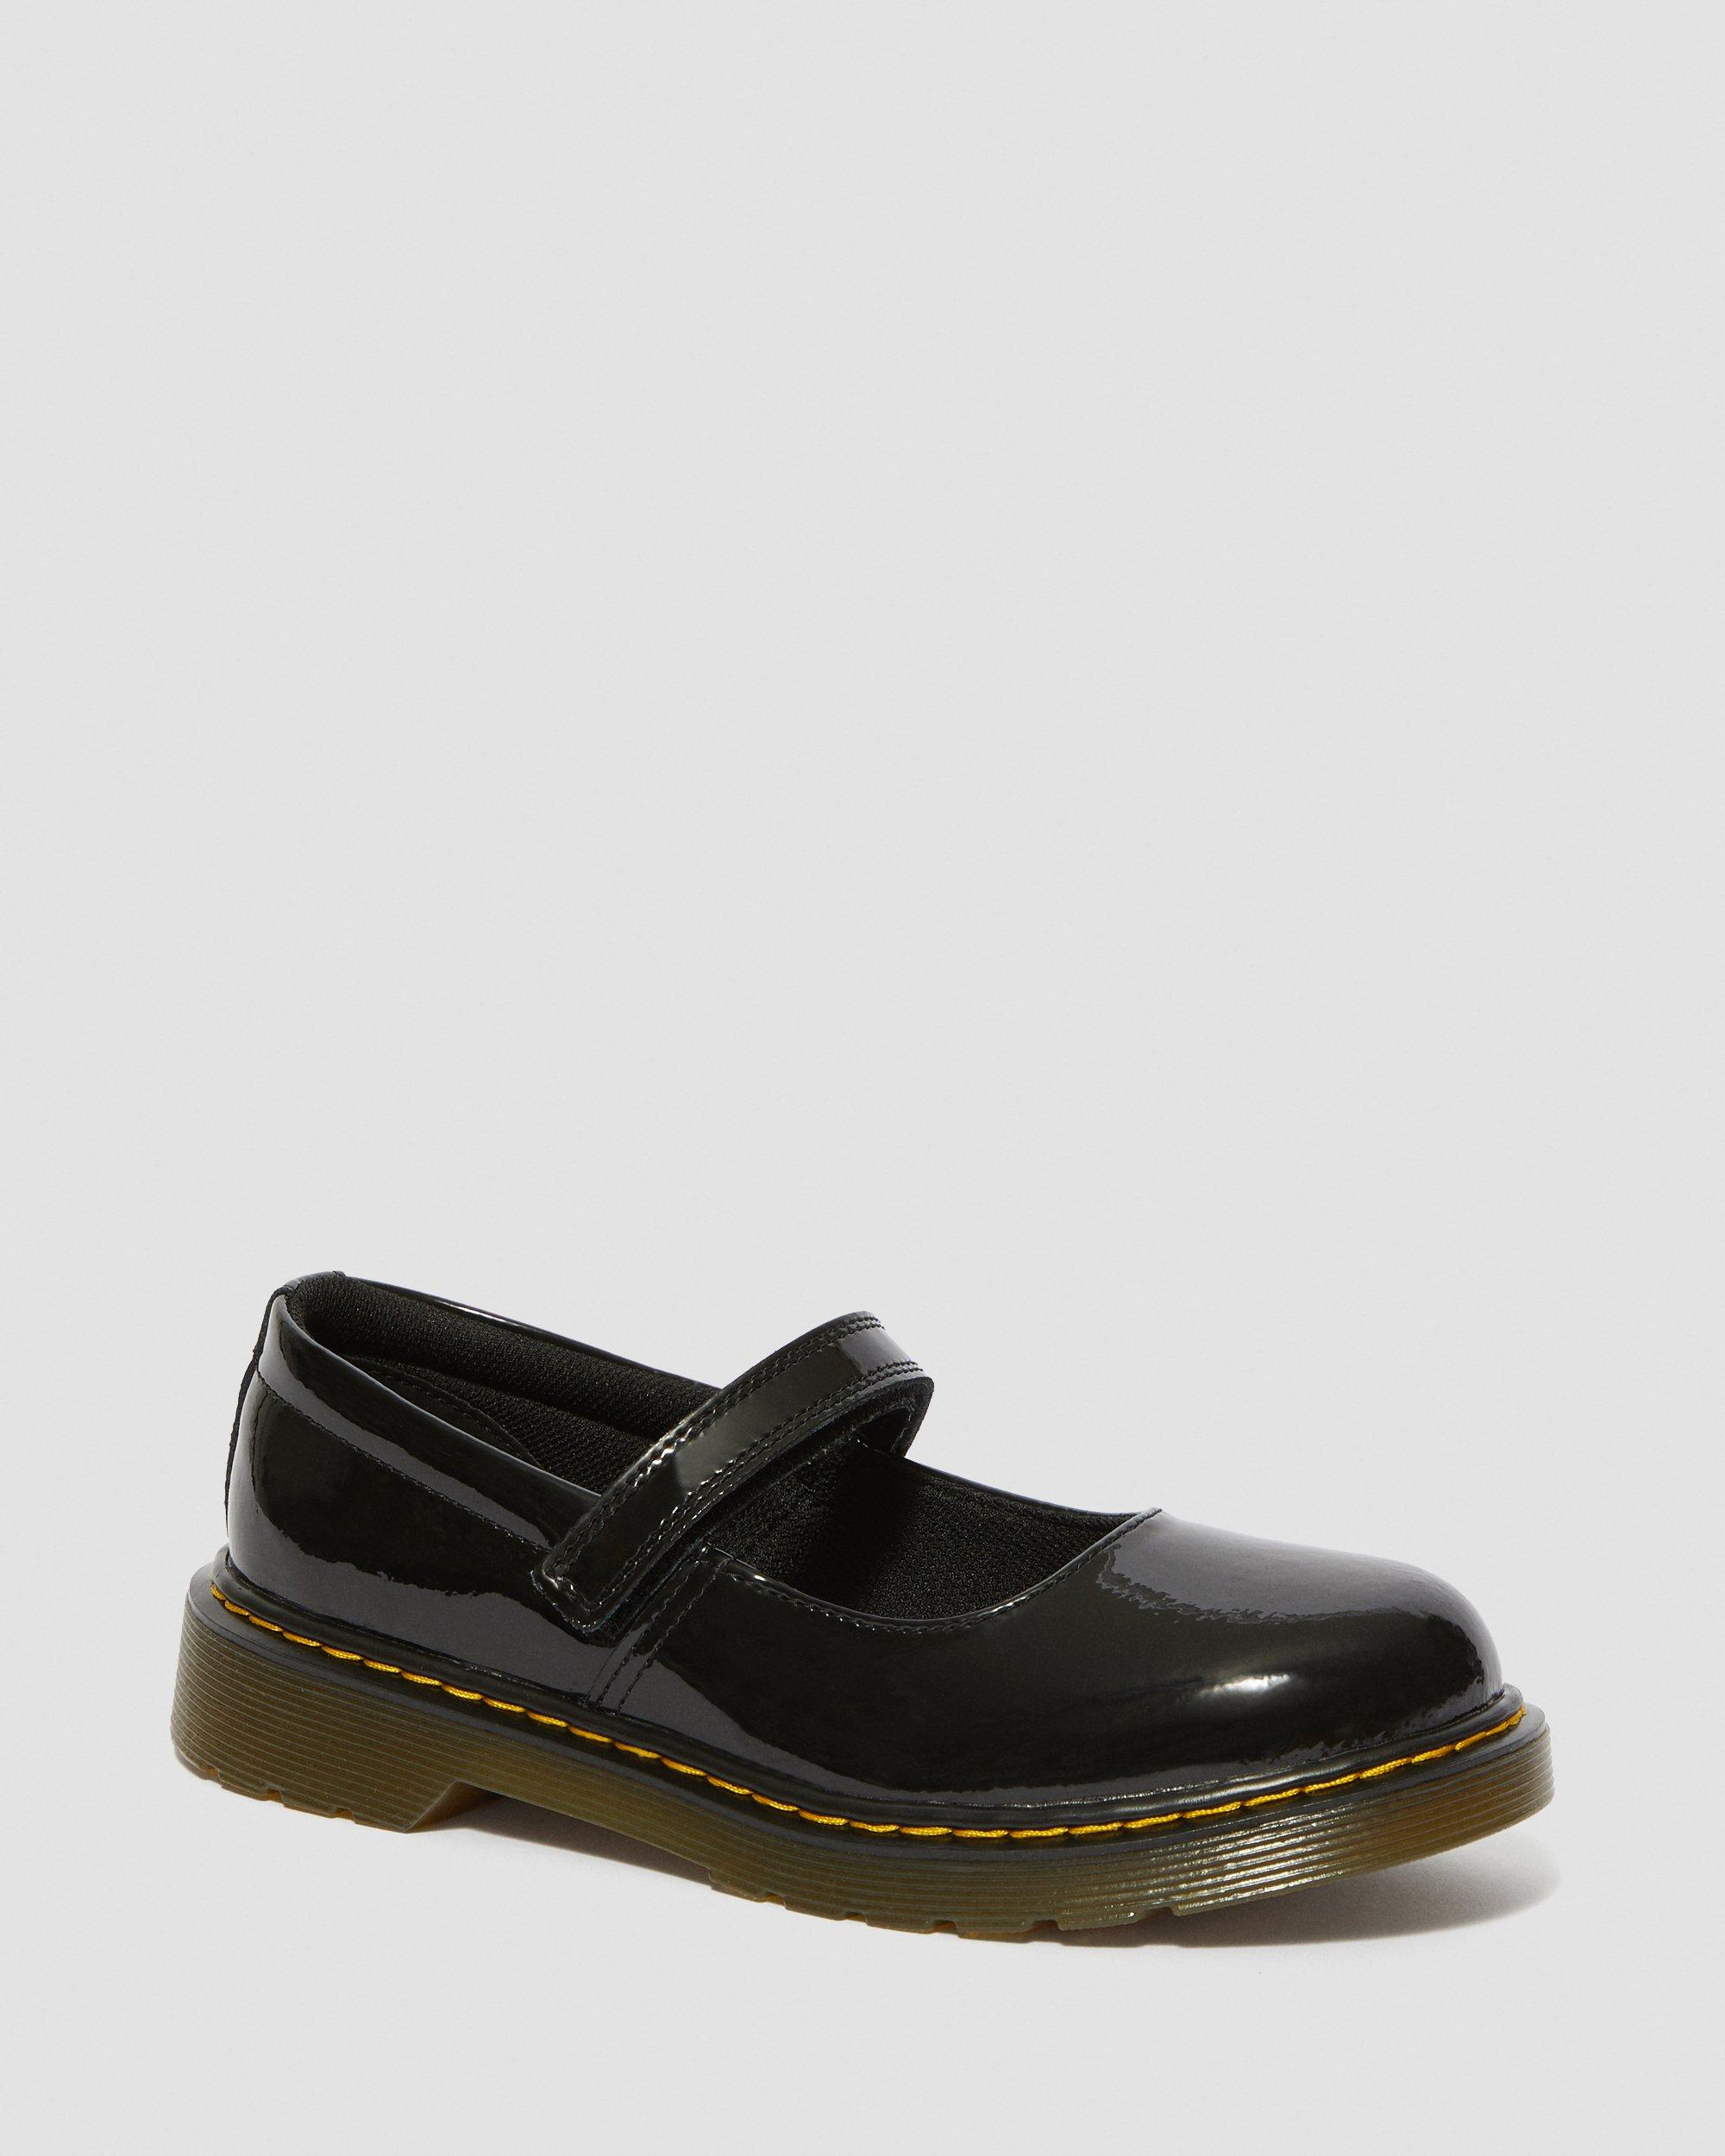 YOUTH MACCY PATENT LEATHER MARY JANE